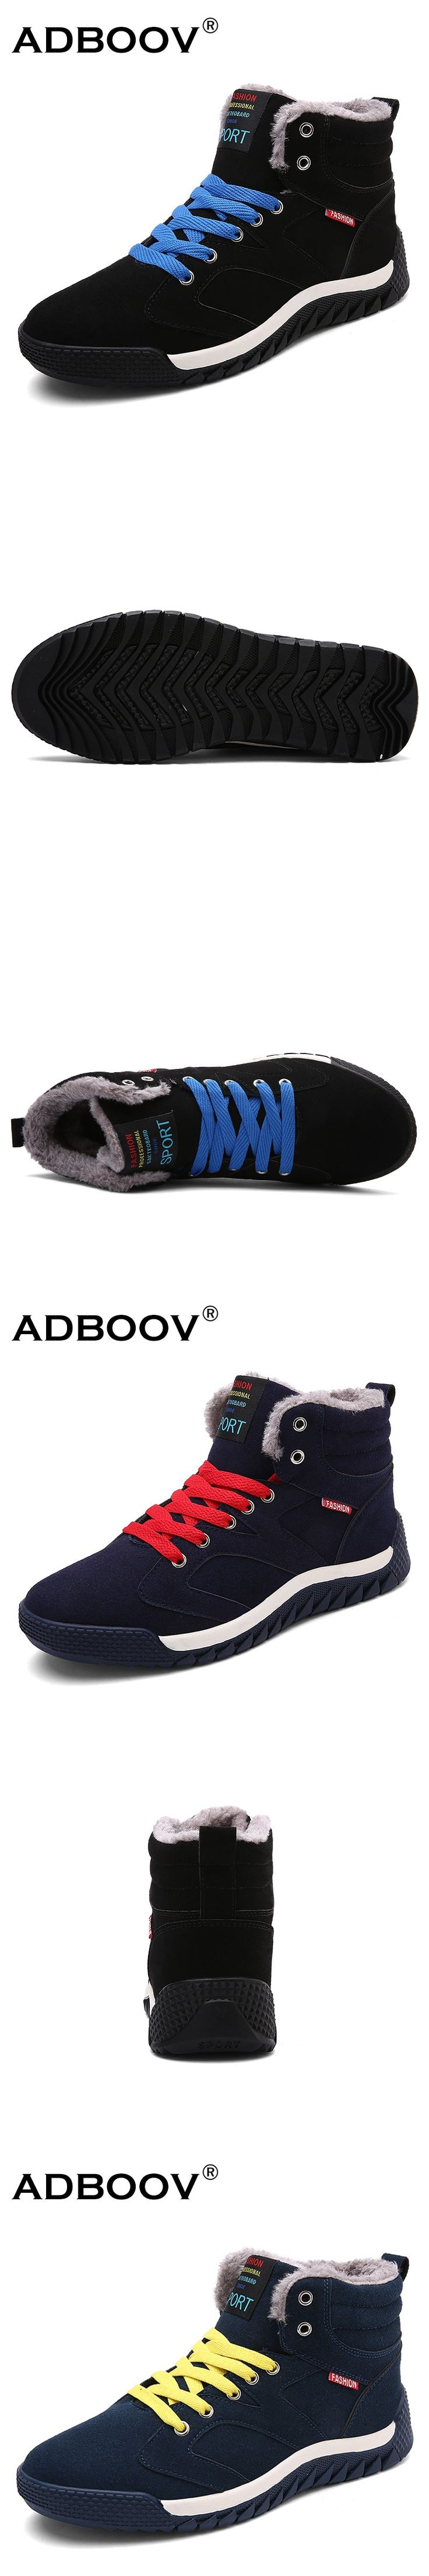 cheap but good quality man snow boots have fur inside skidproof sole mens winter shoes with plush inner fashion gents warm boots